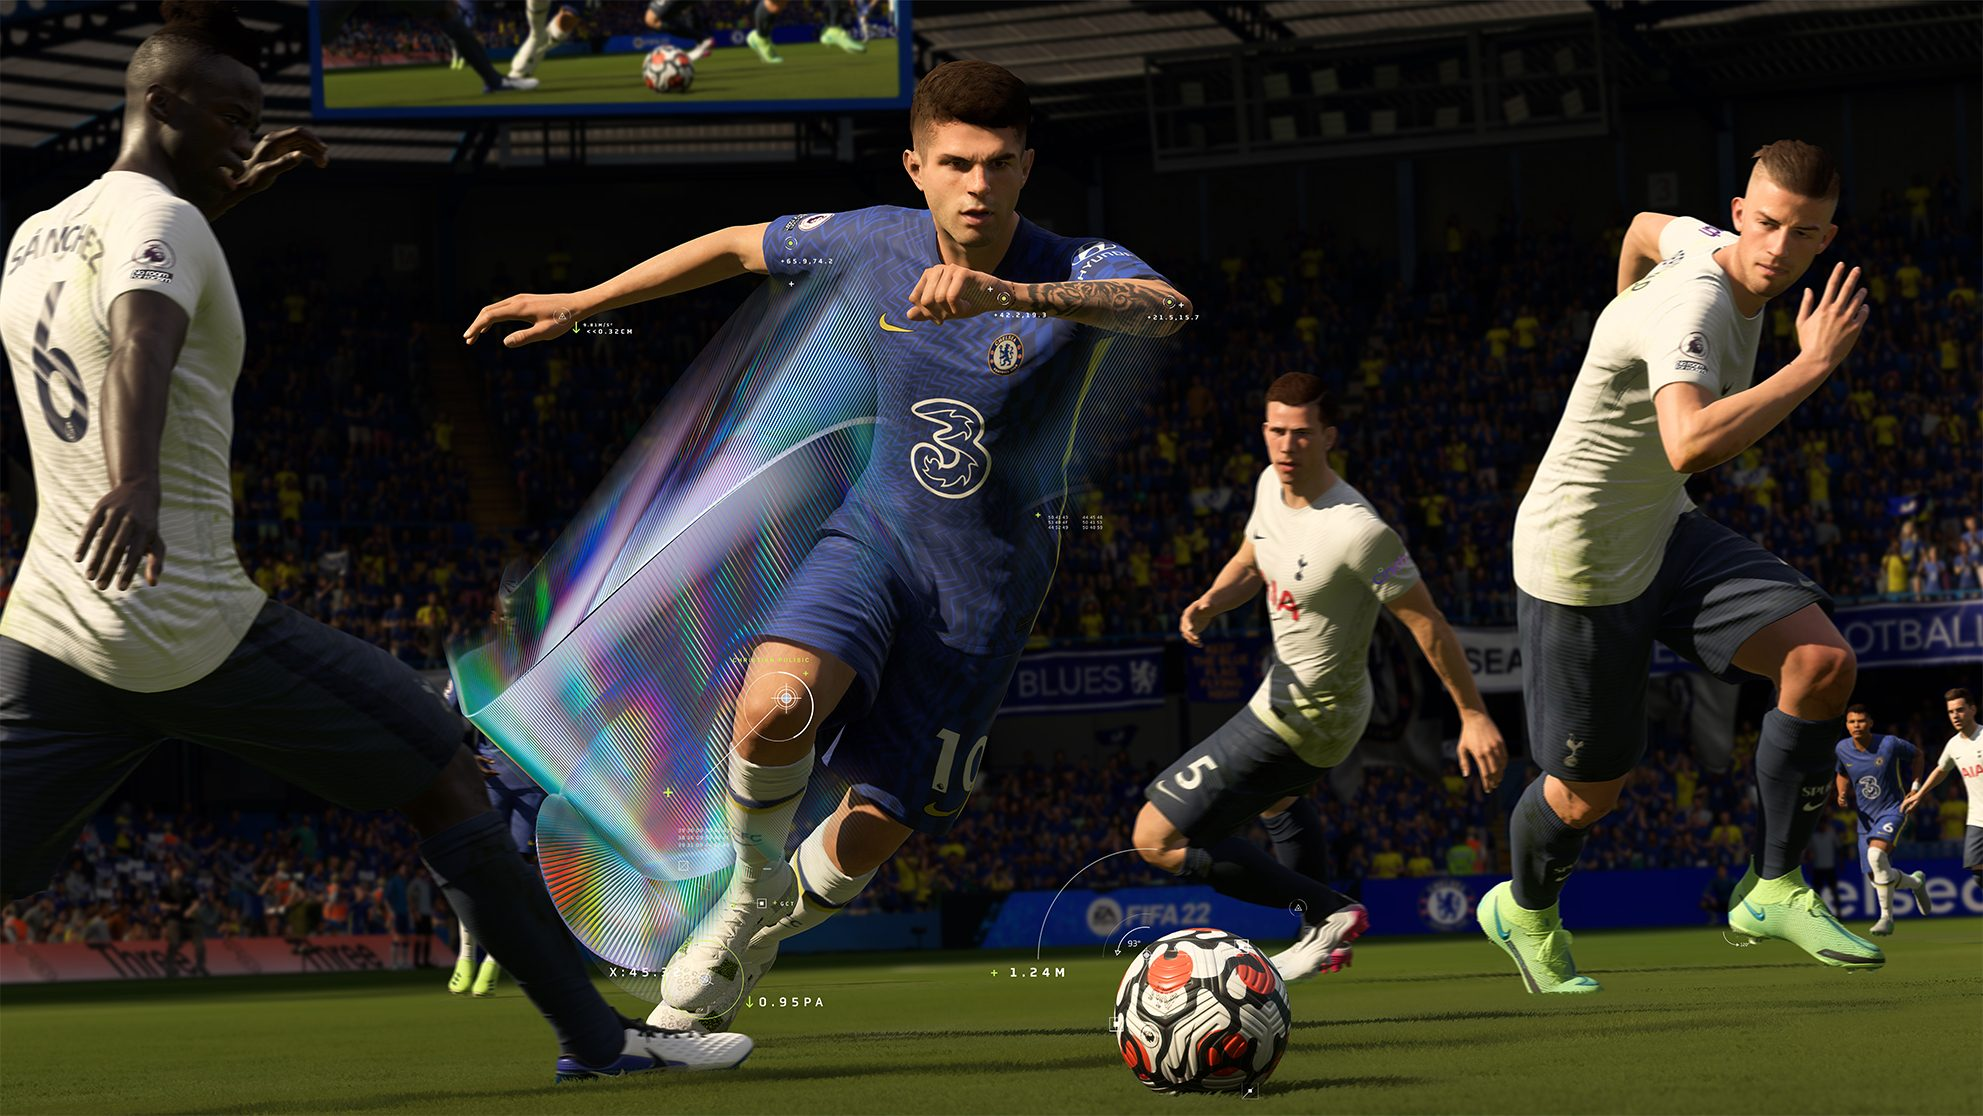 fifa-22:-how-ps5's-dualsense-controller-and-3d-audio-immerse-you-in-the-world's-video-game-like-under-no-circumstances-ahead-of